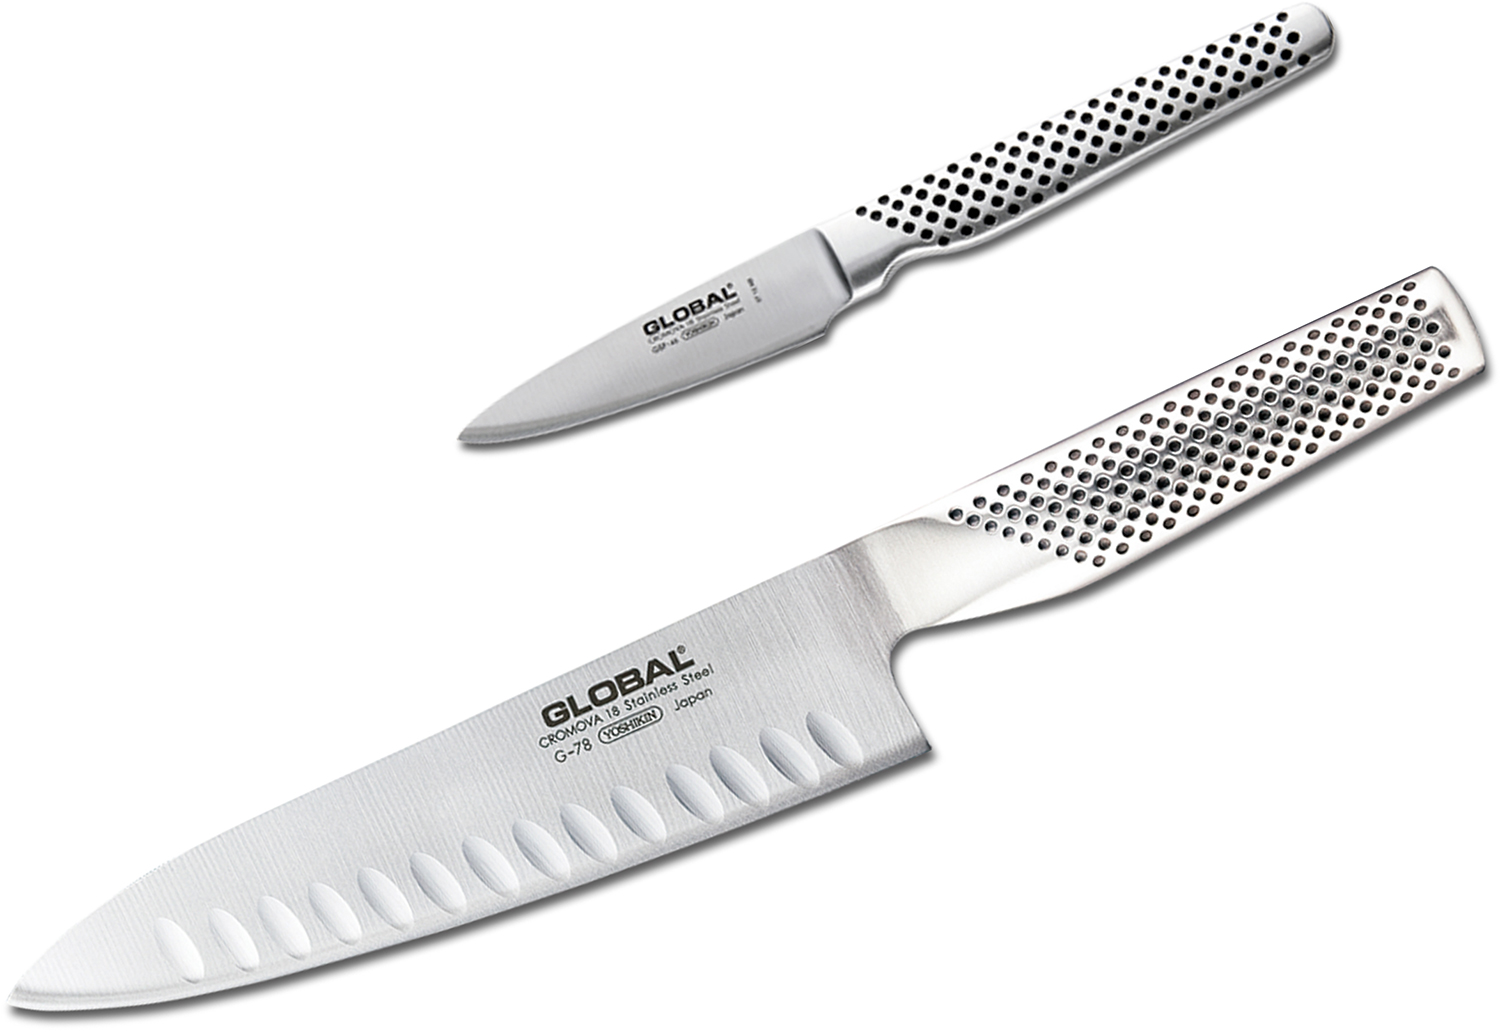 Global G-7846 Classic 2 Piece Kitchen Knife Set